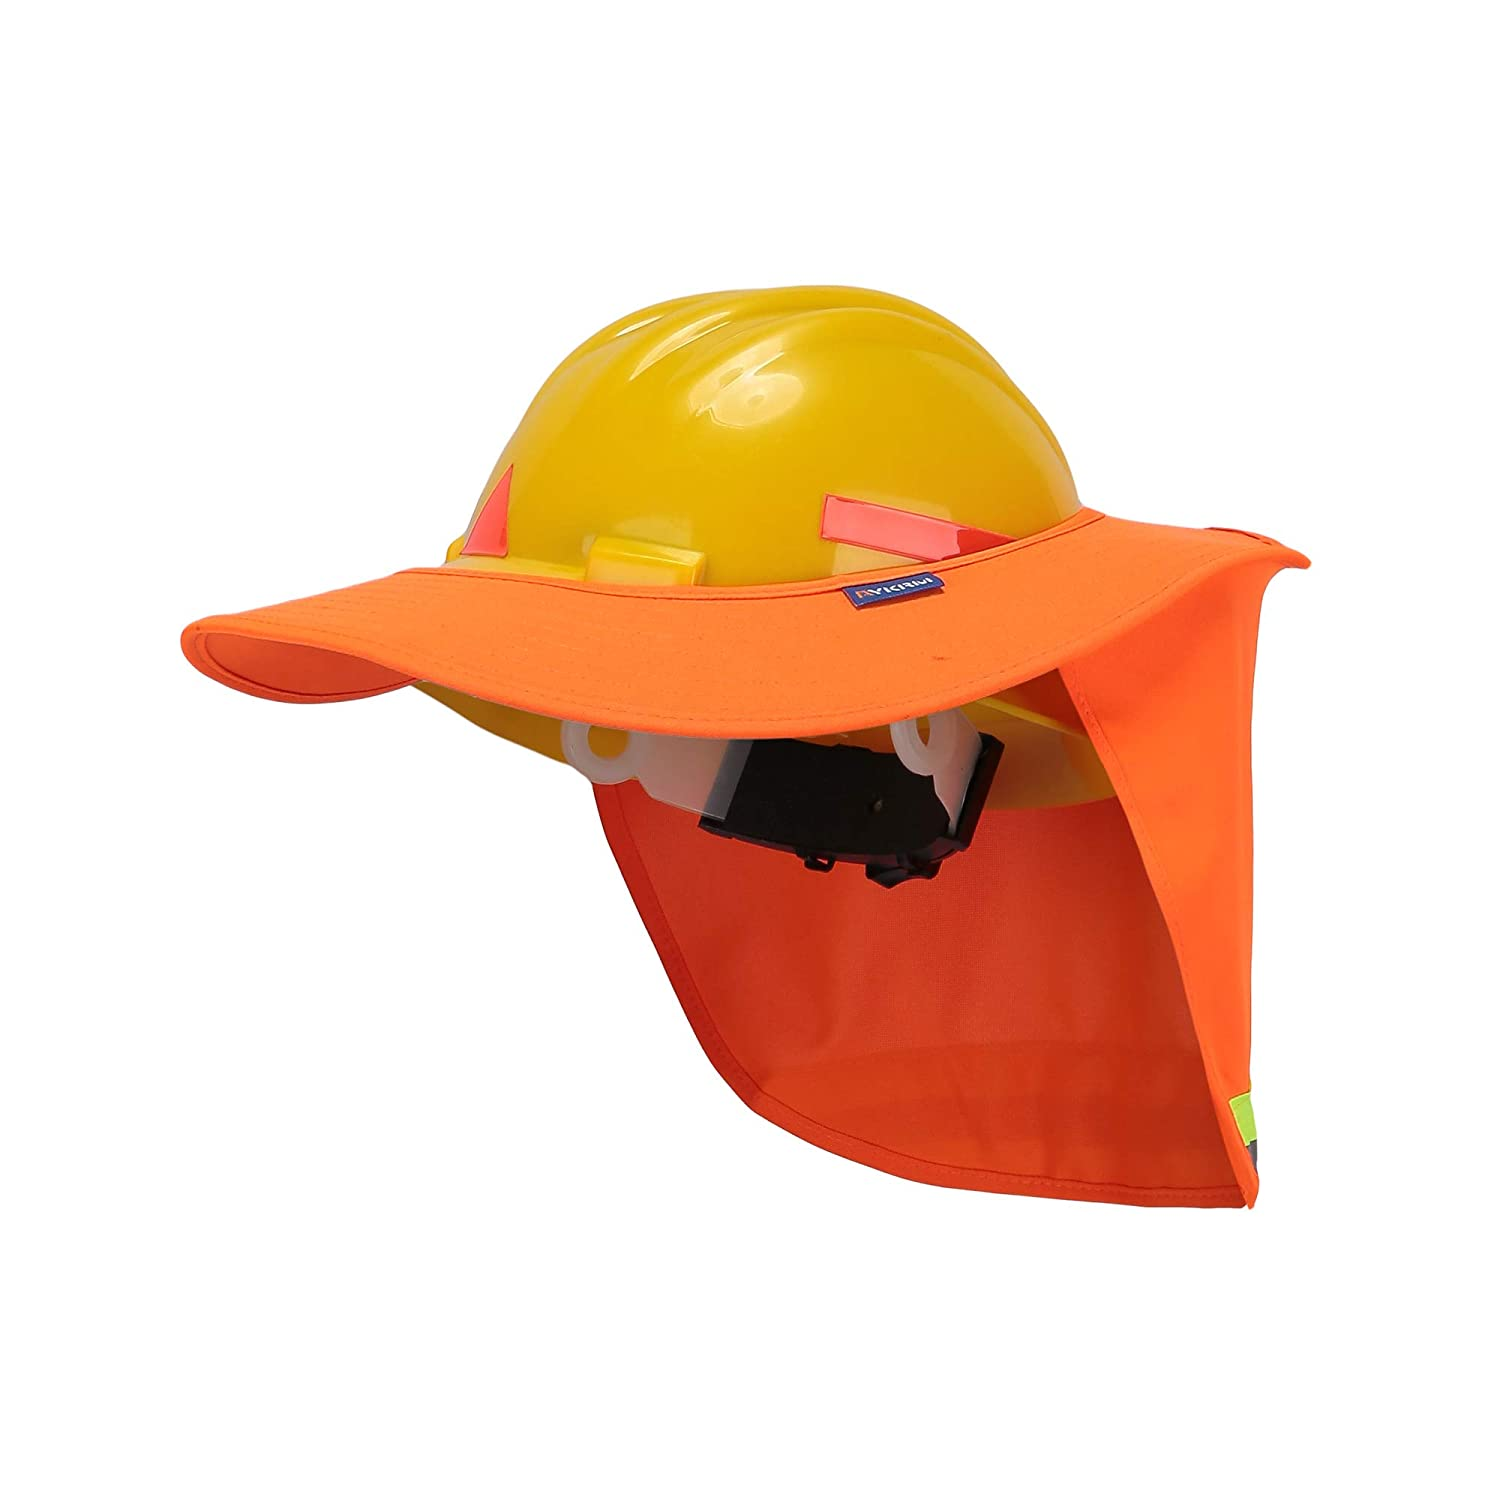 Neck Sun Shield A-safety Polyester Fabric Multifunctional Summer Breathable Hard Hat with Brim Detachable Safety Helmet Sunshade Orange